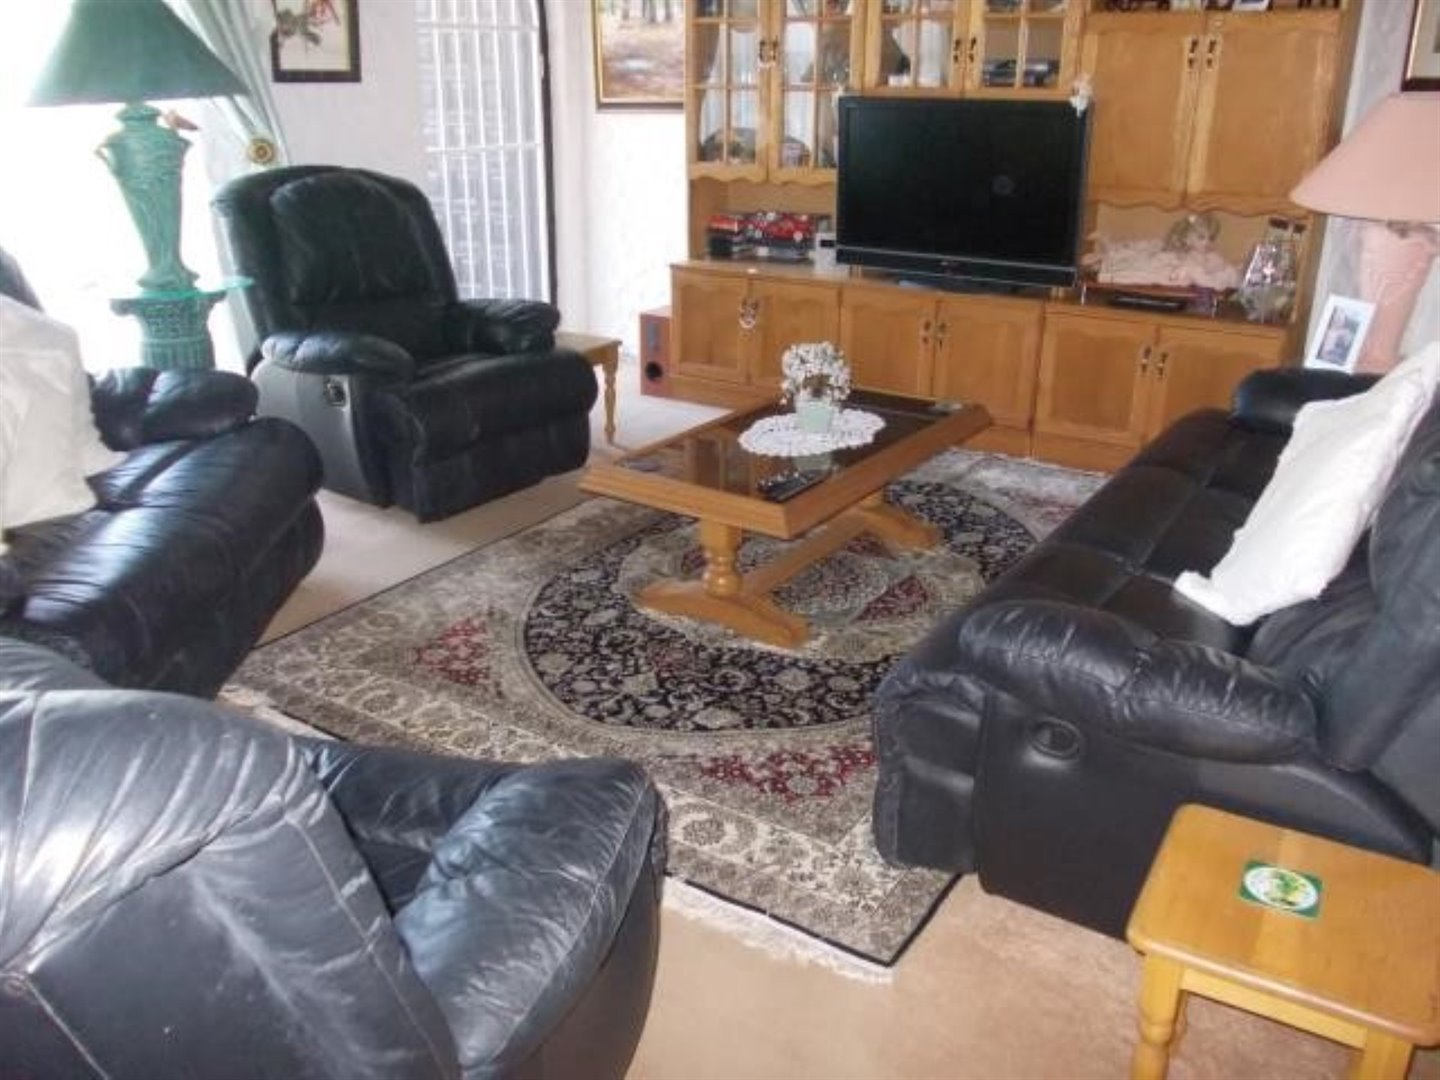 Clansthal property for sale. Ref No: 12736980. Picture no 4